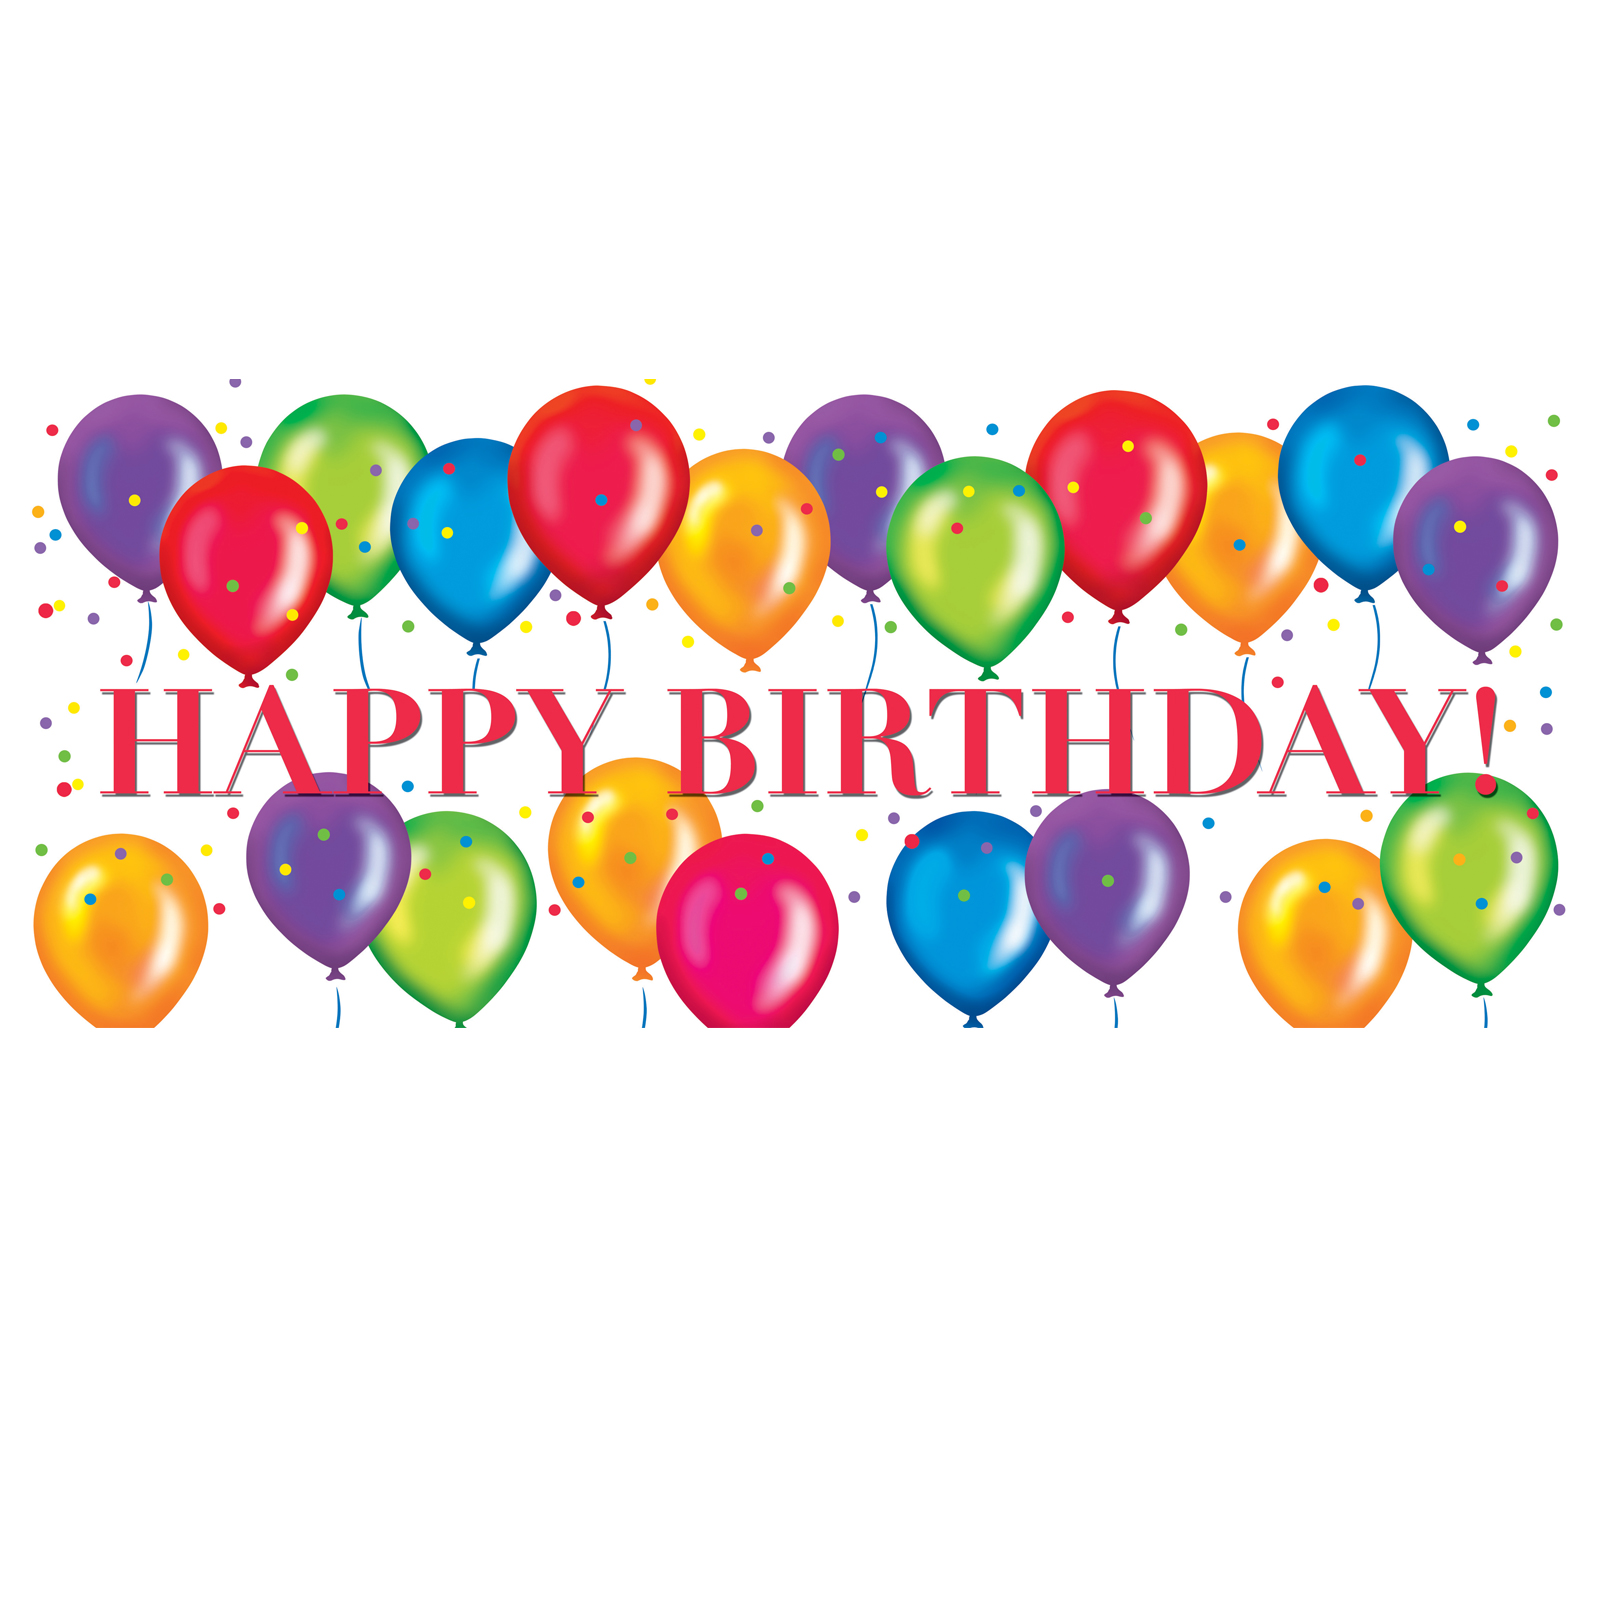 Happy birthday clipart free - ClipartFest